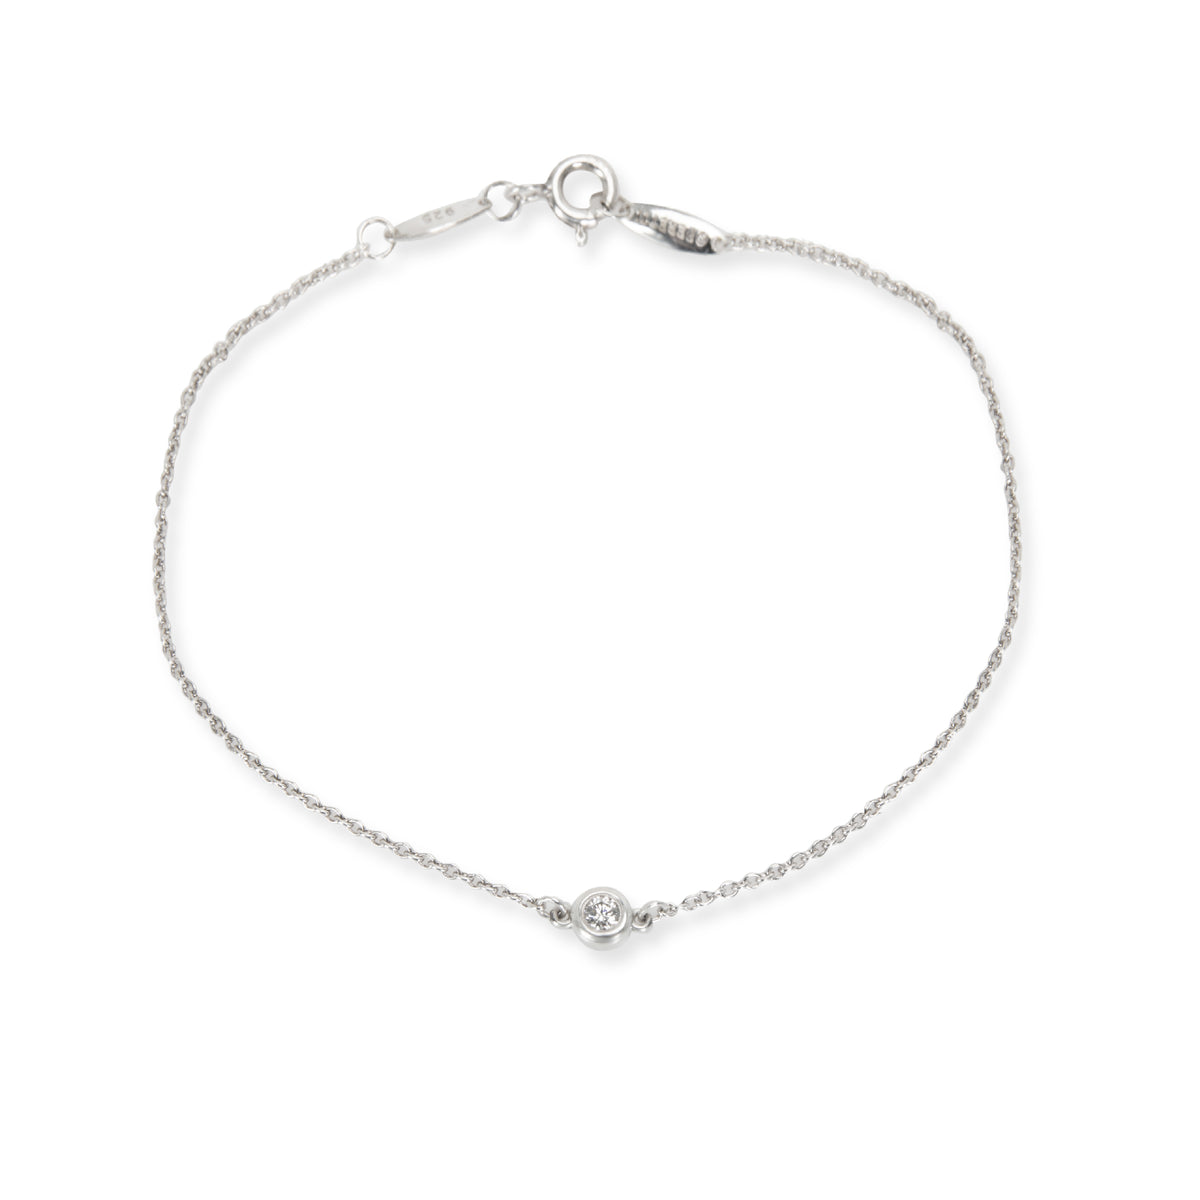 Tiffany & Co. Elsa Peretti Diamond Bracelet in Sterling Silver 0.07 CTW